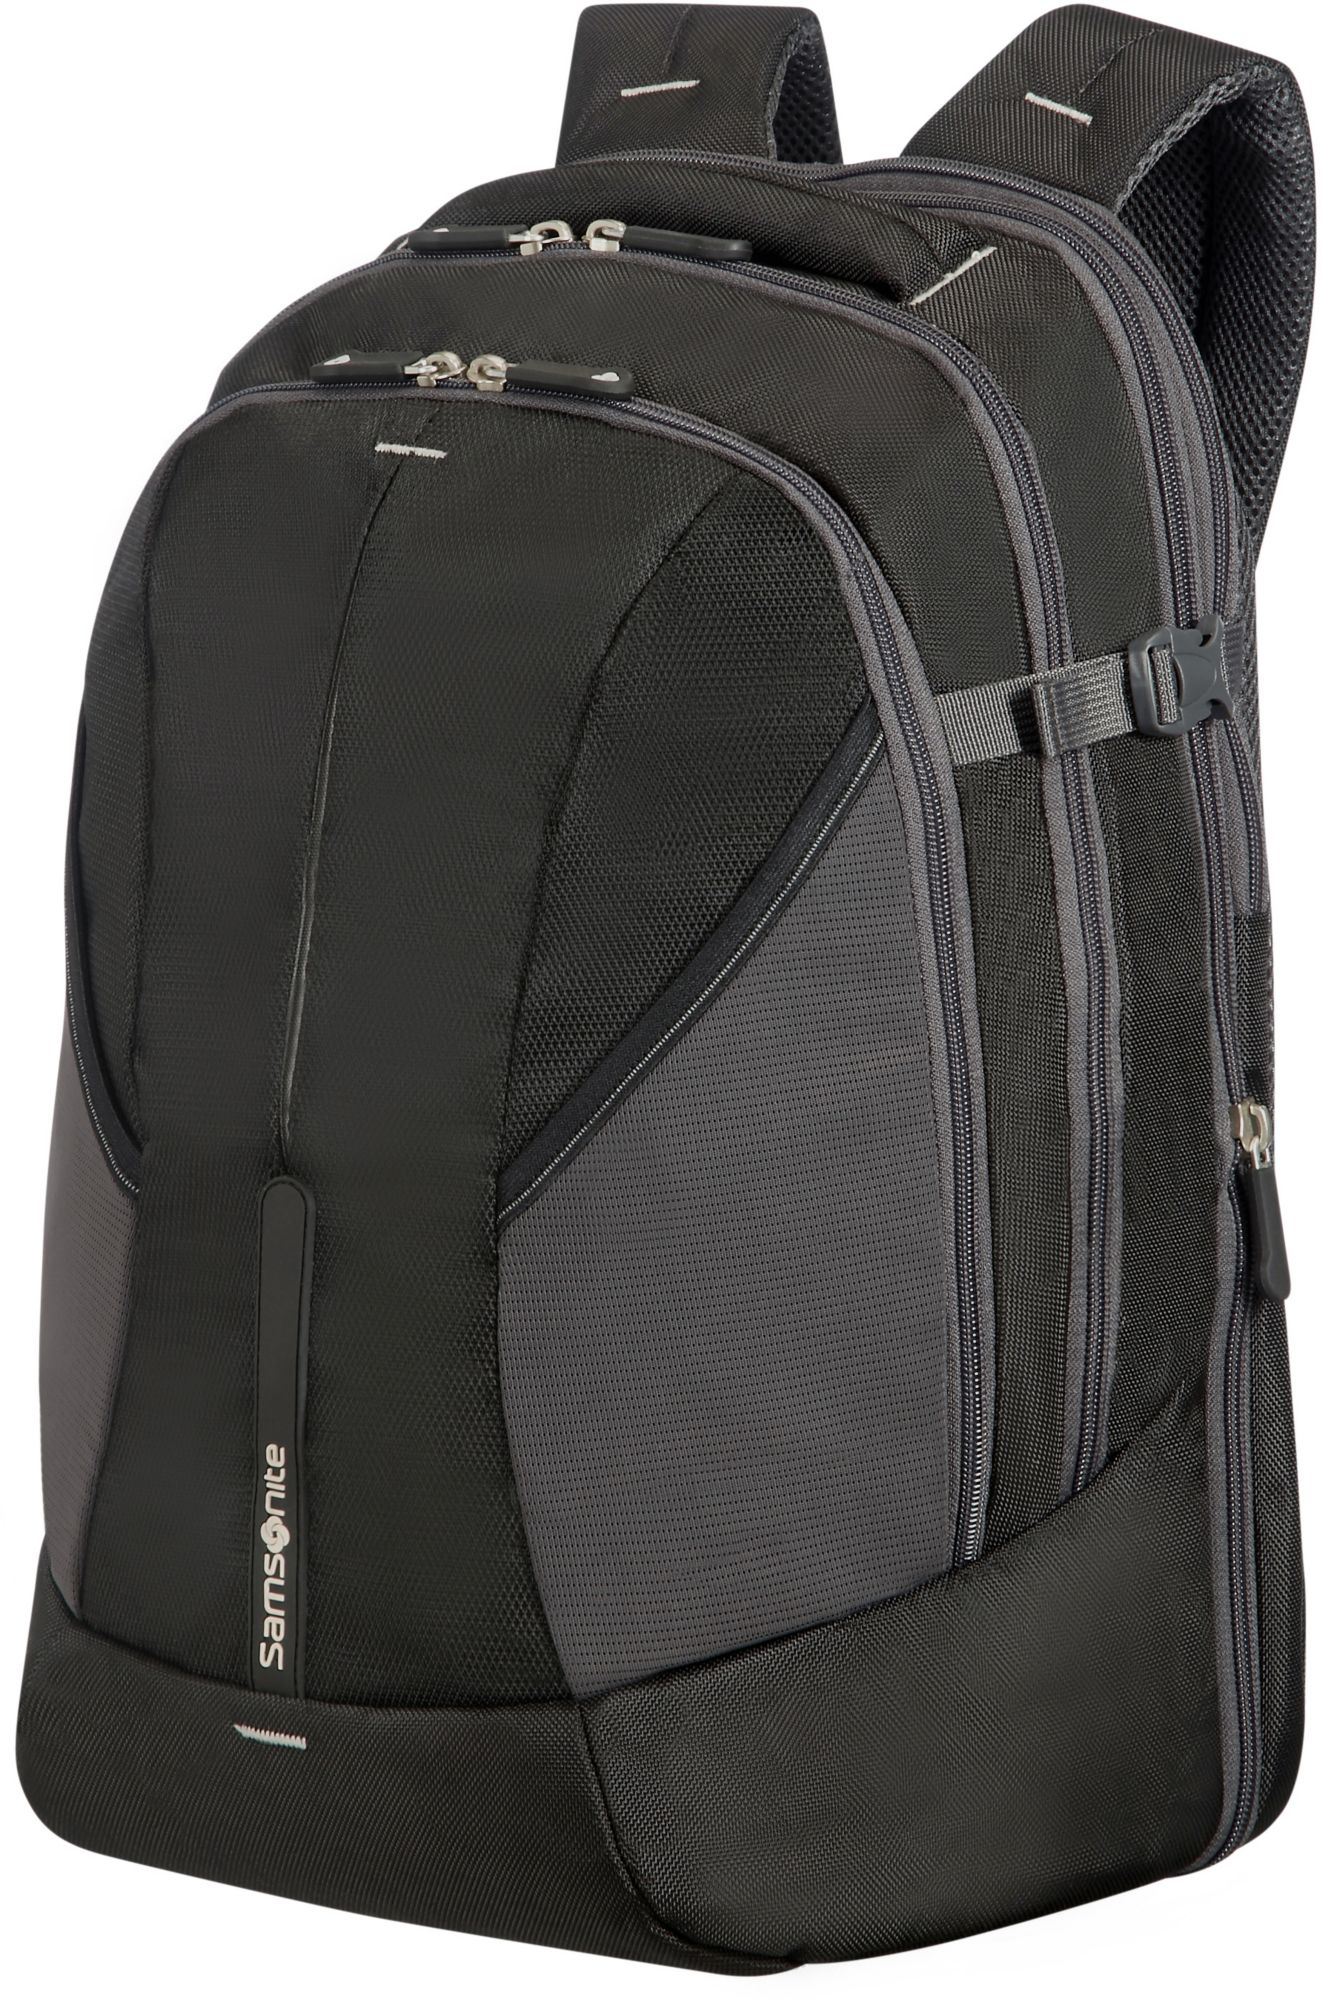 SAMSONITE 4Mation Rucksack 45,5 cm Laptopfach Samsonite black-silver